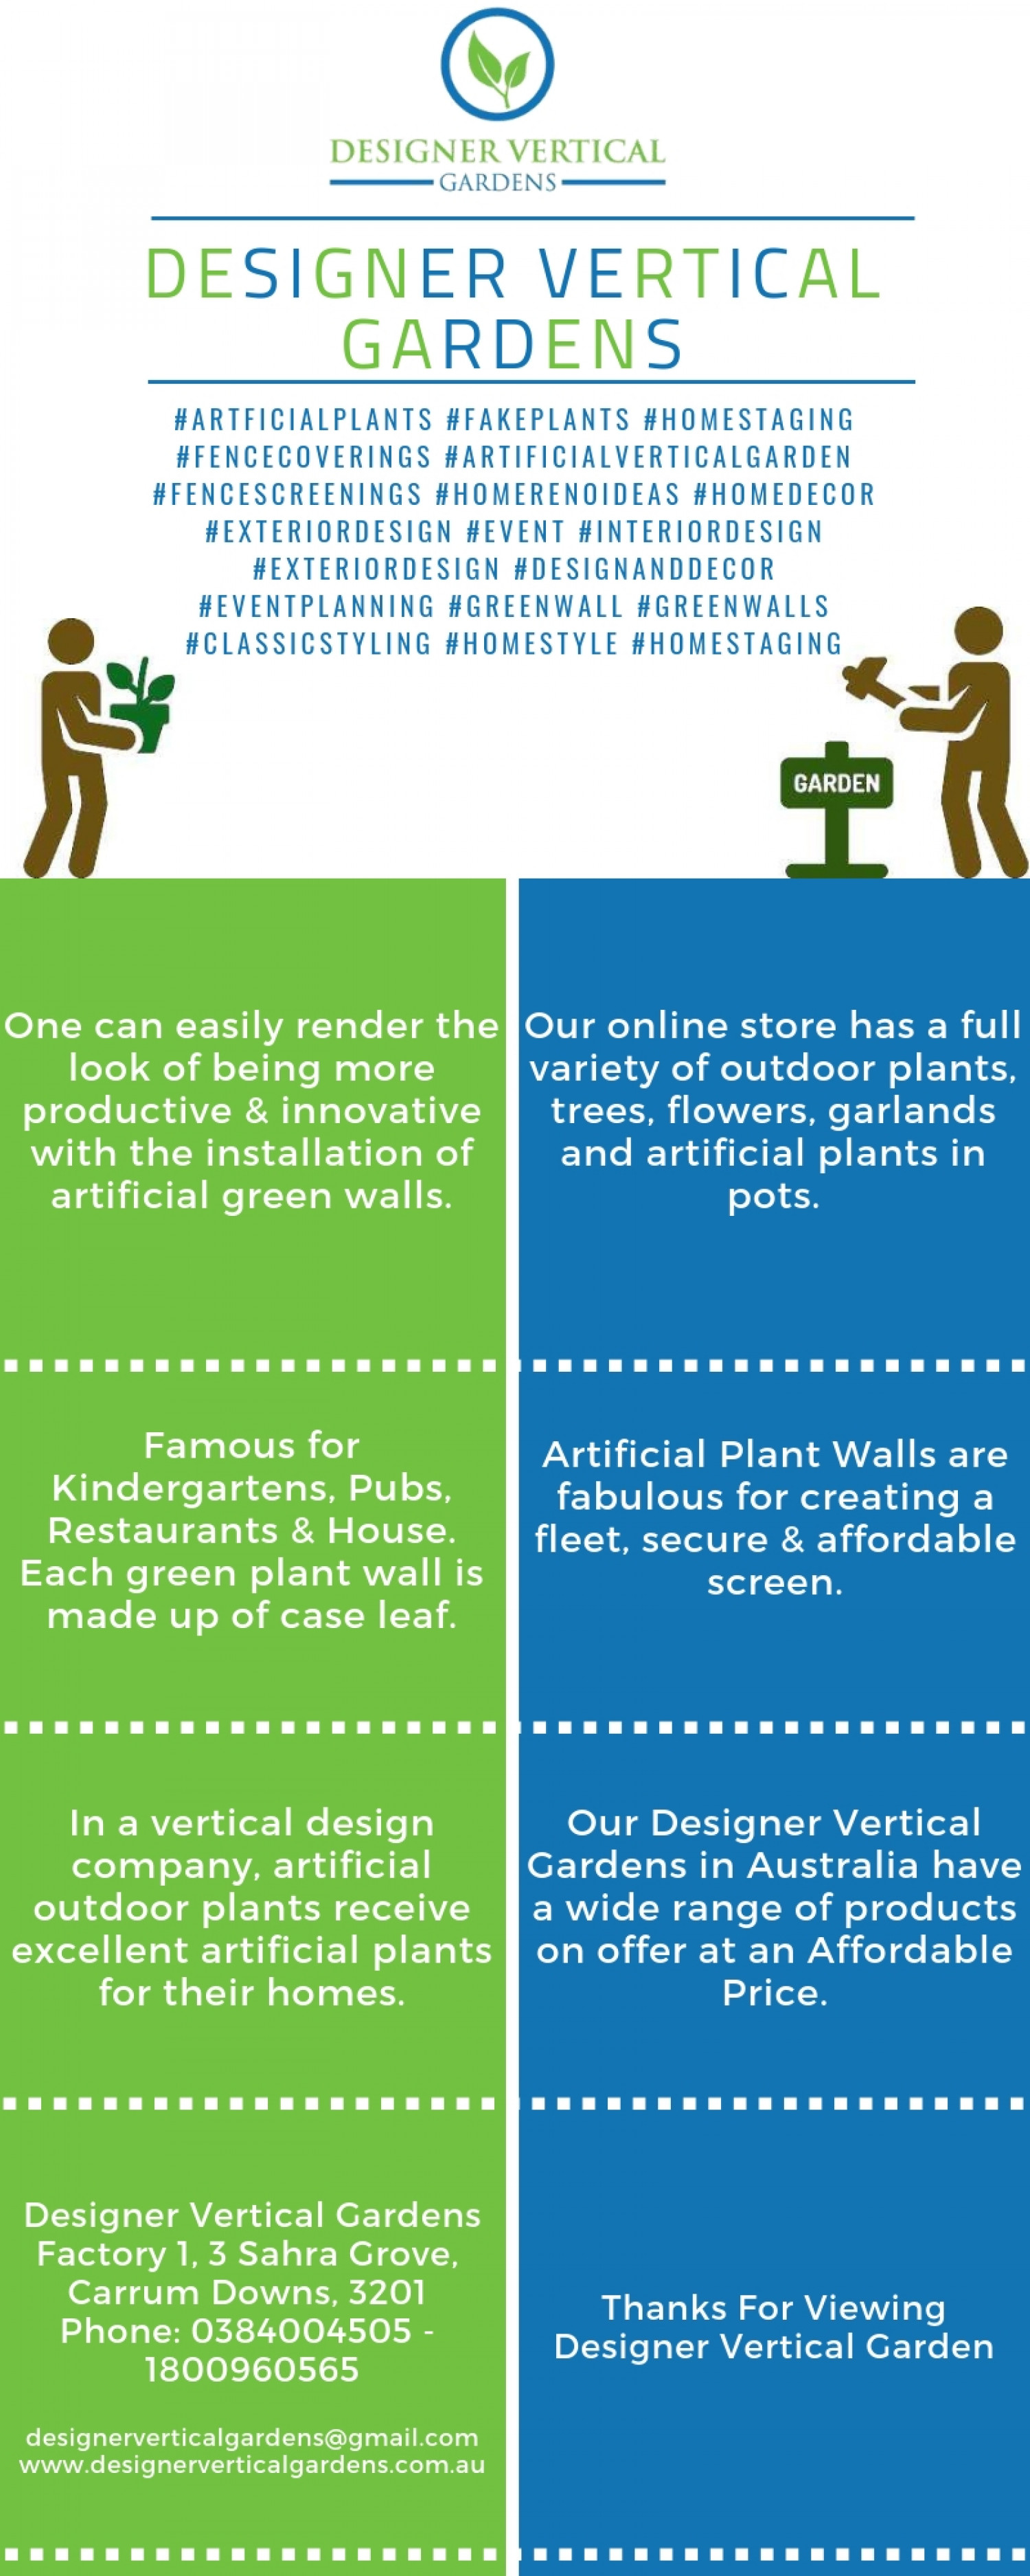 Best Ever Artificial Outdoor Plants in Sydney Infographic